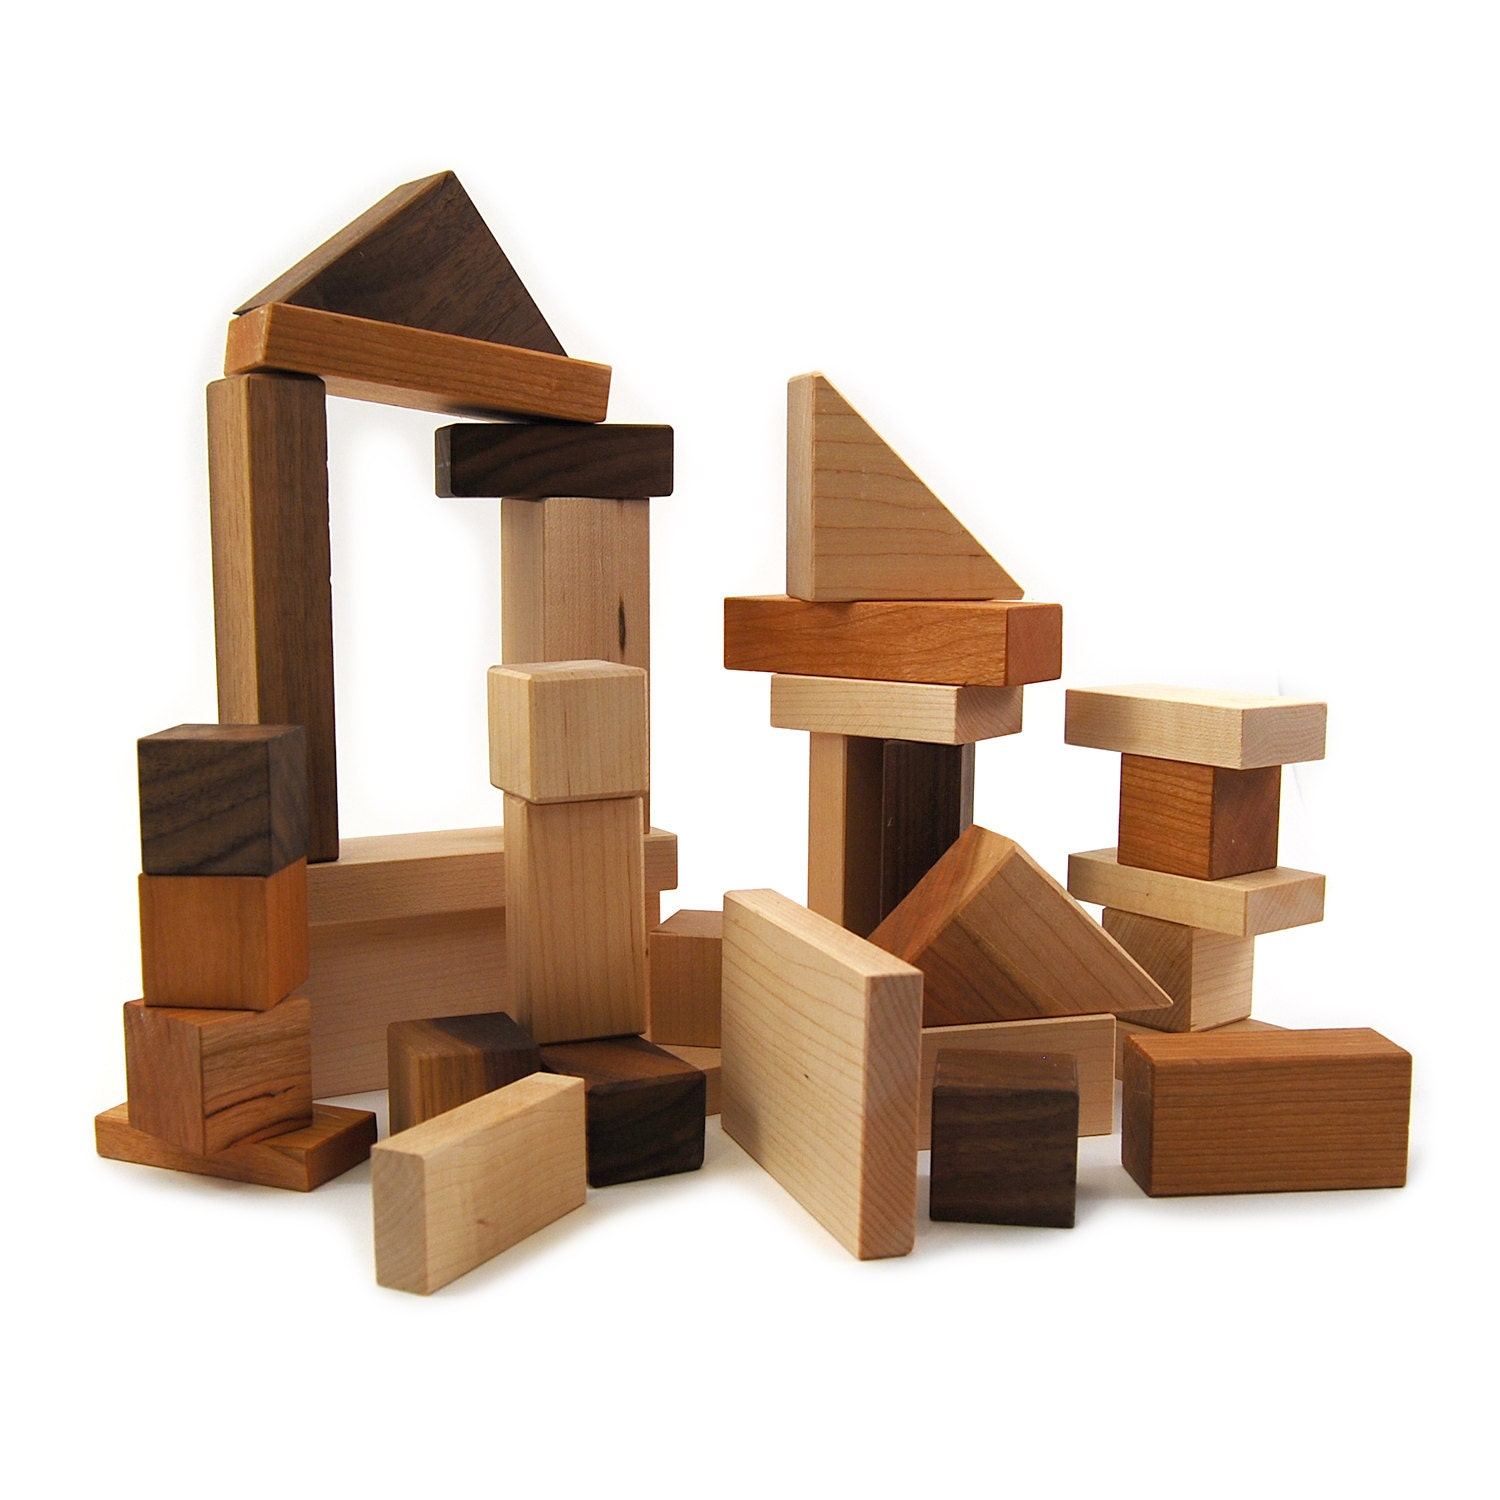 Building Blocks Toy Heirloom Block Set Stacking Blocks